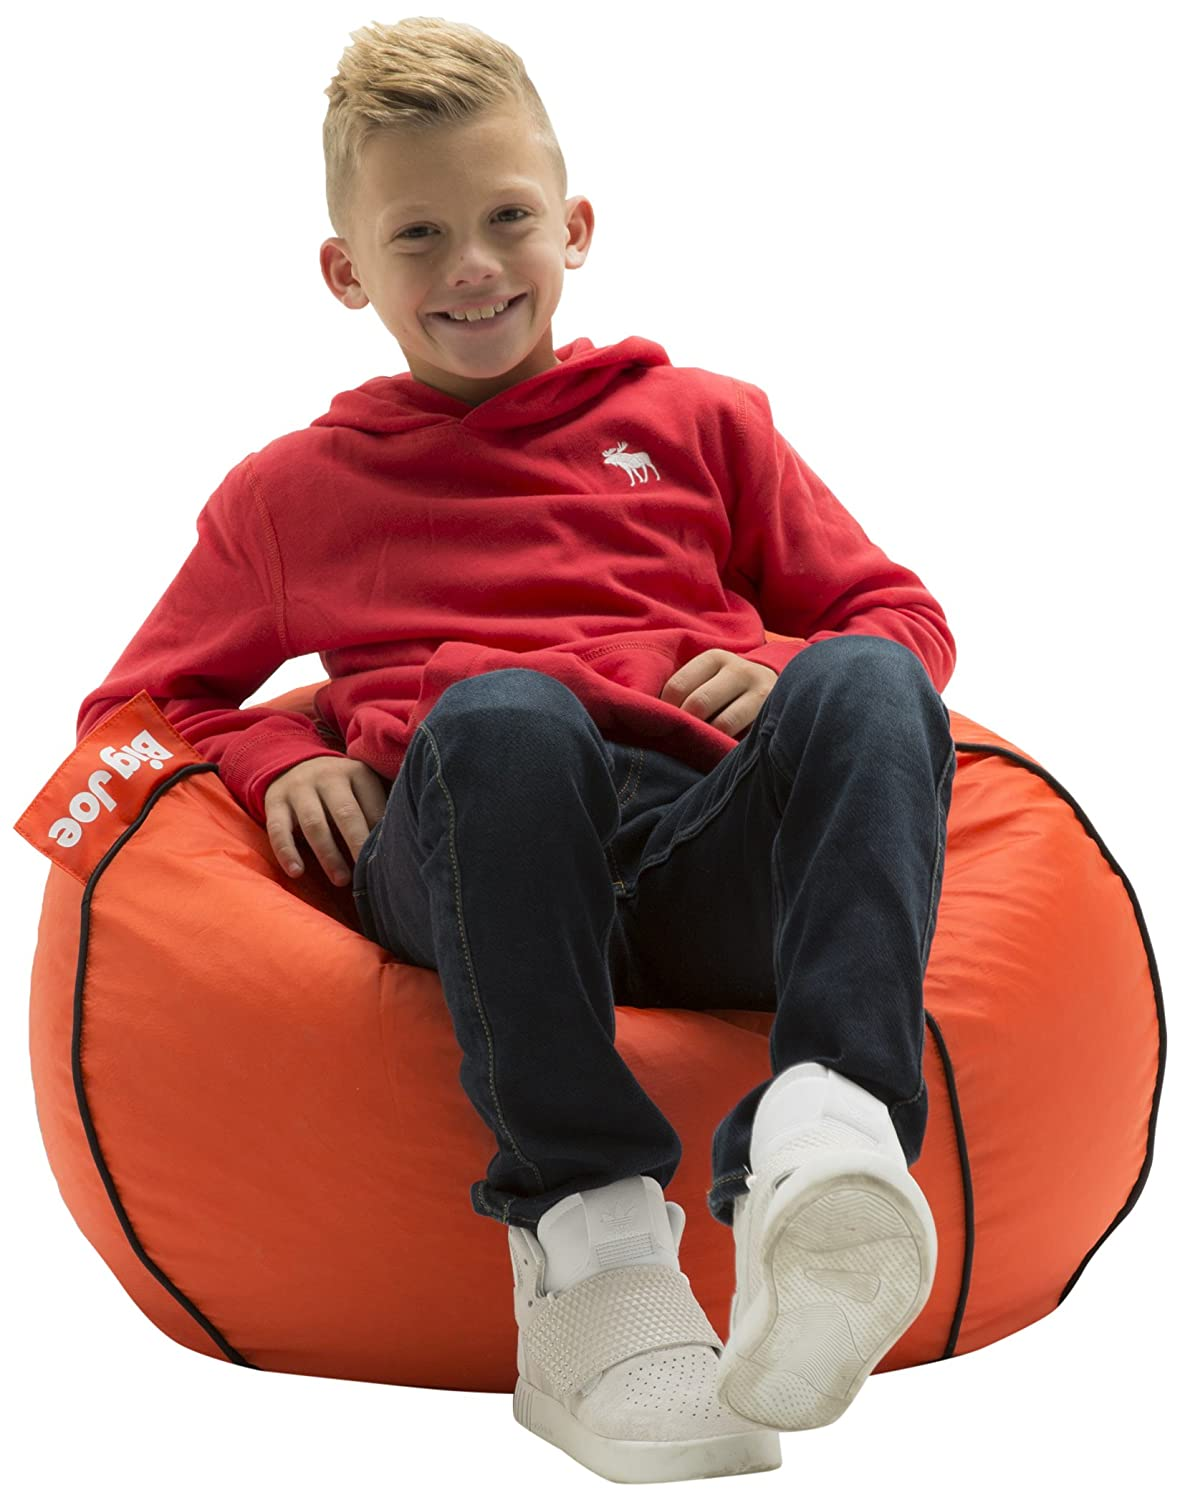 Awesome Big Joe 615135 Bean Bag Chair Basketball Caraccident5 Cool Chair Designs And Ideas Caraccident5Info